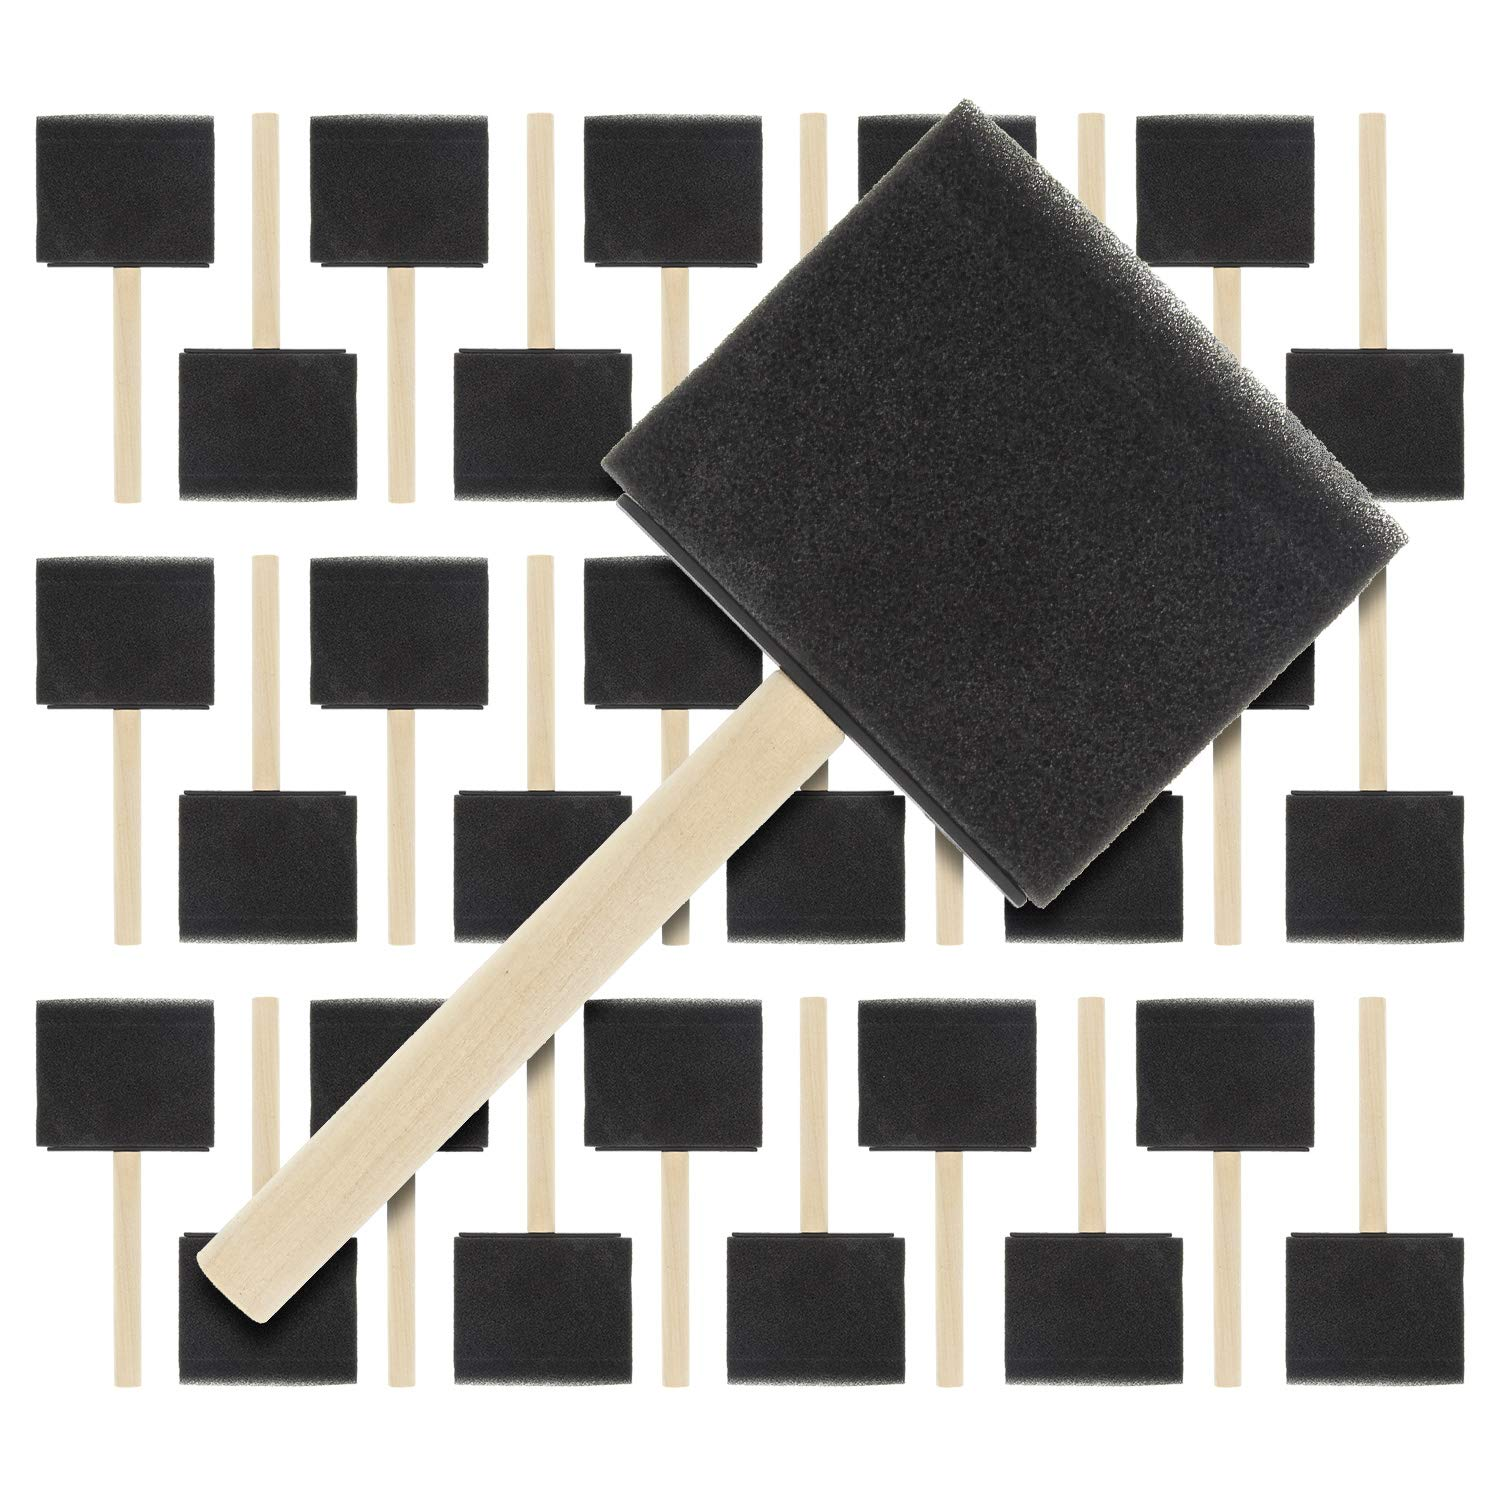 US Art Supply 3 inch Foam Sponge Wood Handle Paint Brush Set (Super Value Pack of 30 Brushes) - Lightweight, Durable and Great for Acrylics, Stains, Varnishes, Crafts, Art by US Art Supply